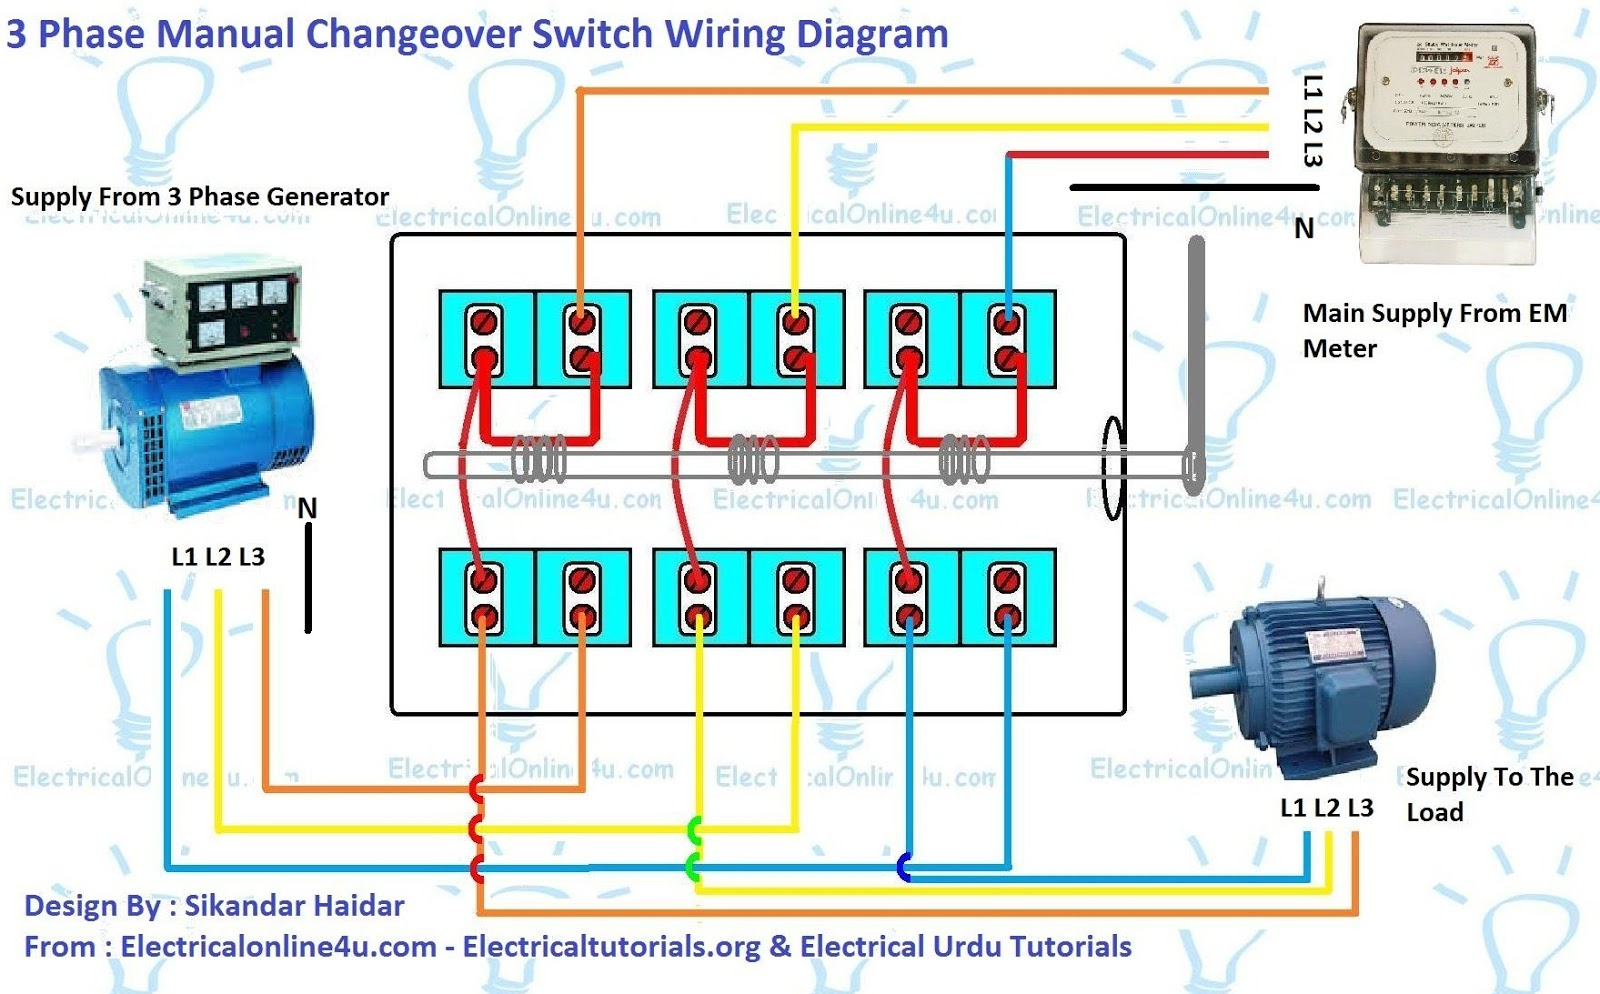 Awe Inspiring 3 Phase Manual Changeover Switch Wiring Diagram For Generator Wiring Digital Resources Funapmognl